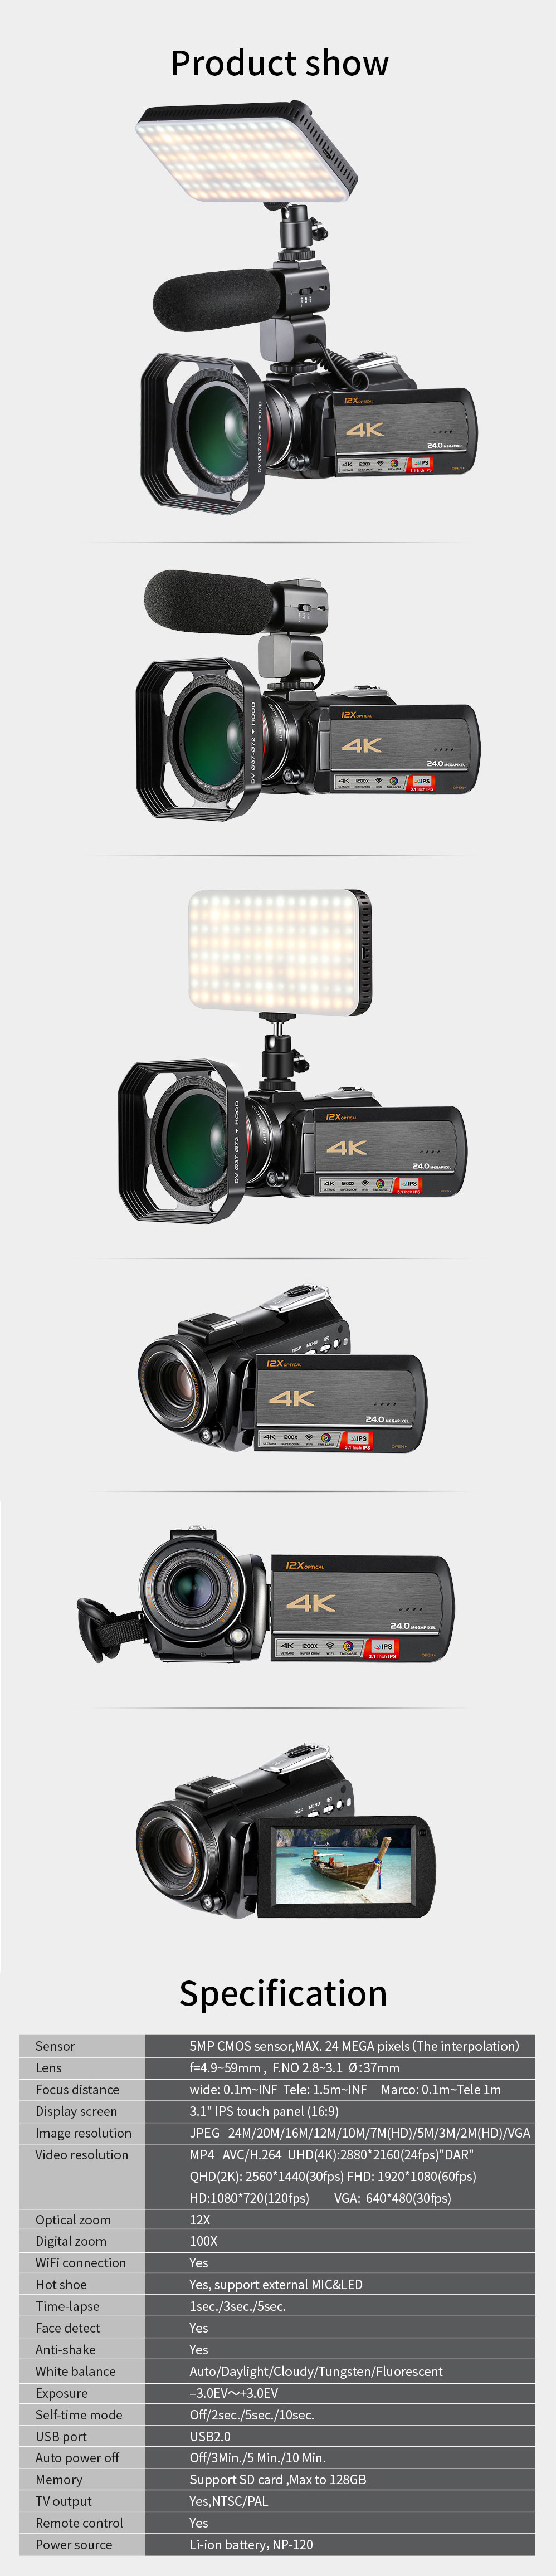 4k WIFI Digital Video Camcorder with 3.0'' Touch Display/12 x Optical Zoom Professional Home Use Digital Camcorder 10